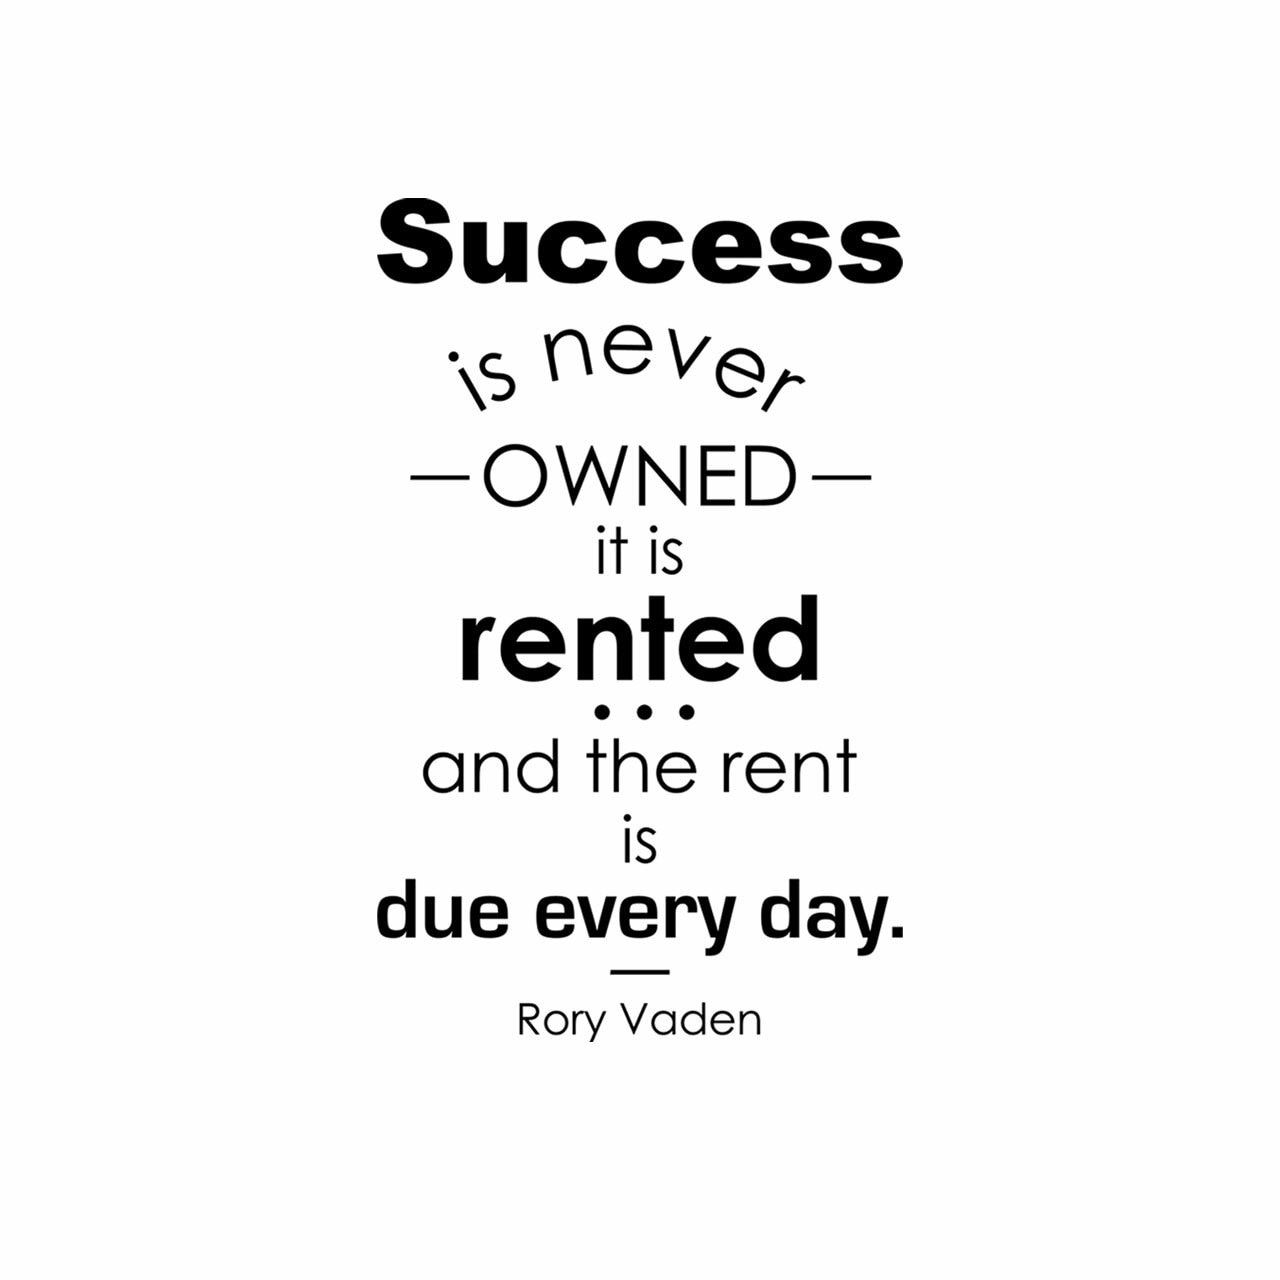 Success is never owned it is rented and the rent is due every day. -Rory Vaden written in black on white background